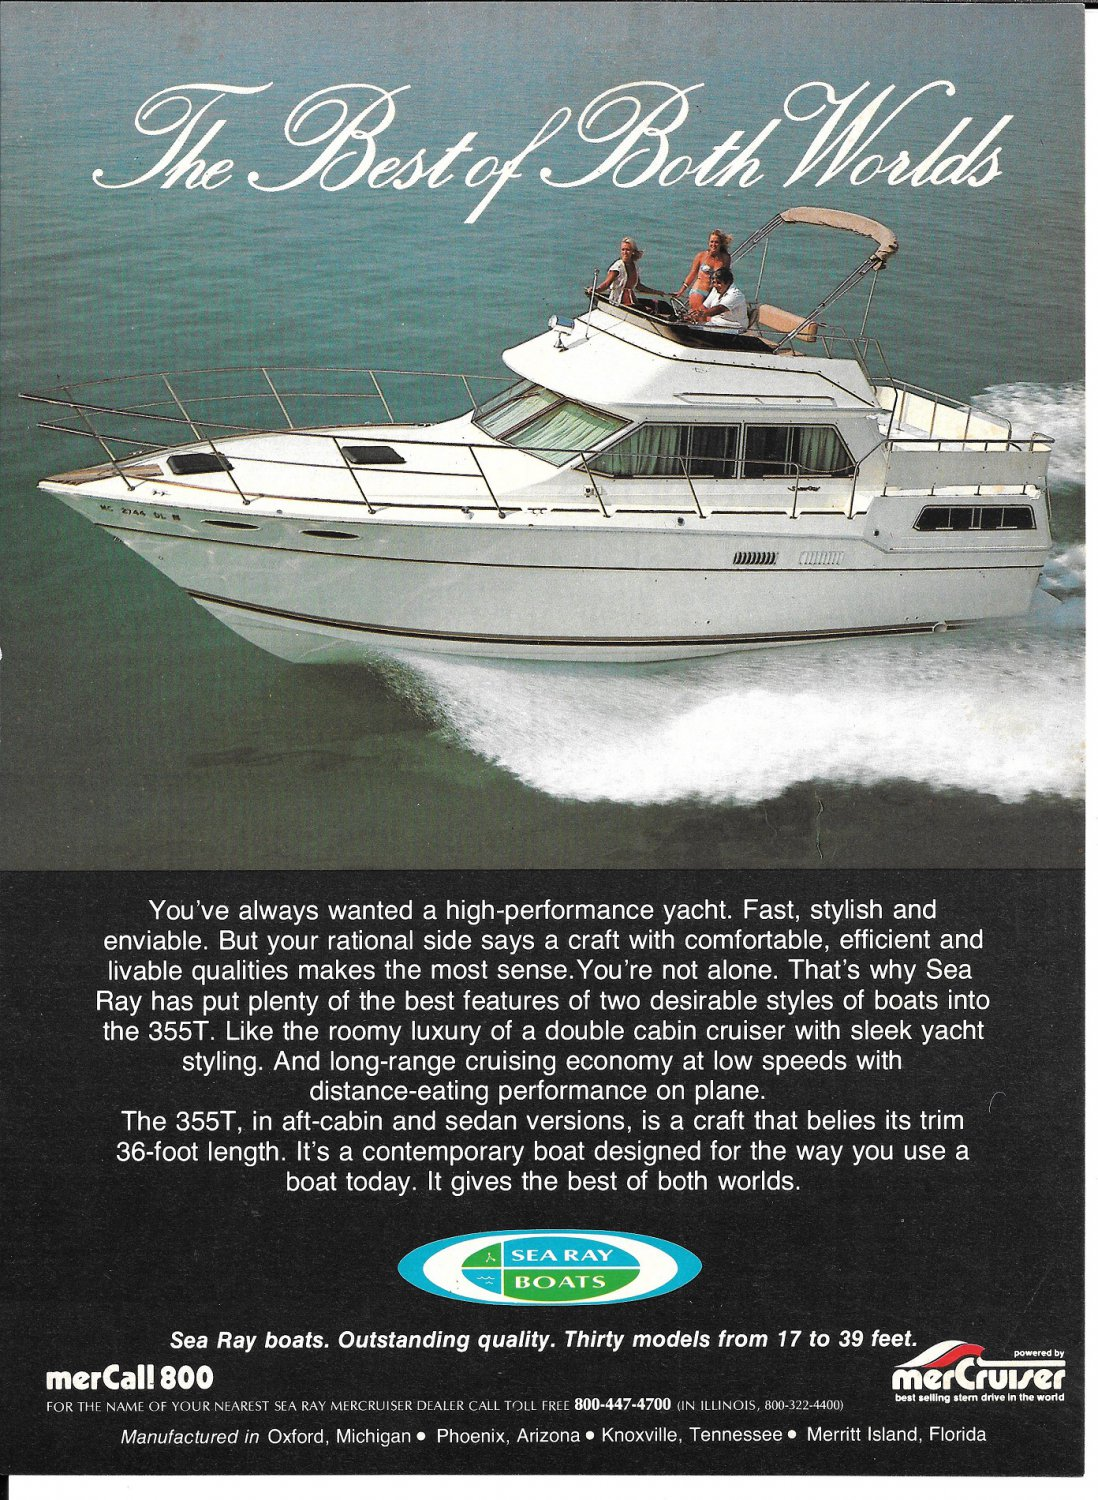 1983 Sea Ray 355T Boat Color Ad- Nice Photo- Hot Girls